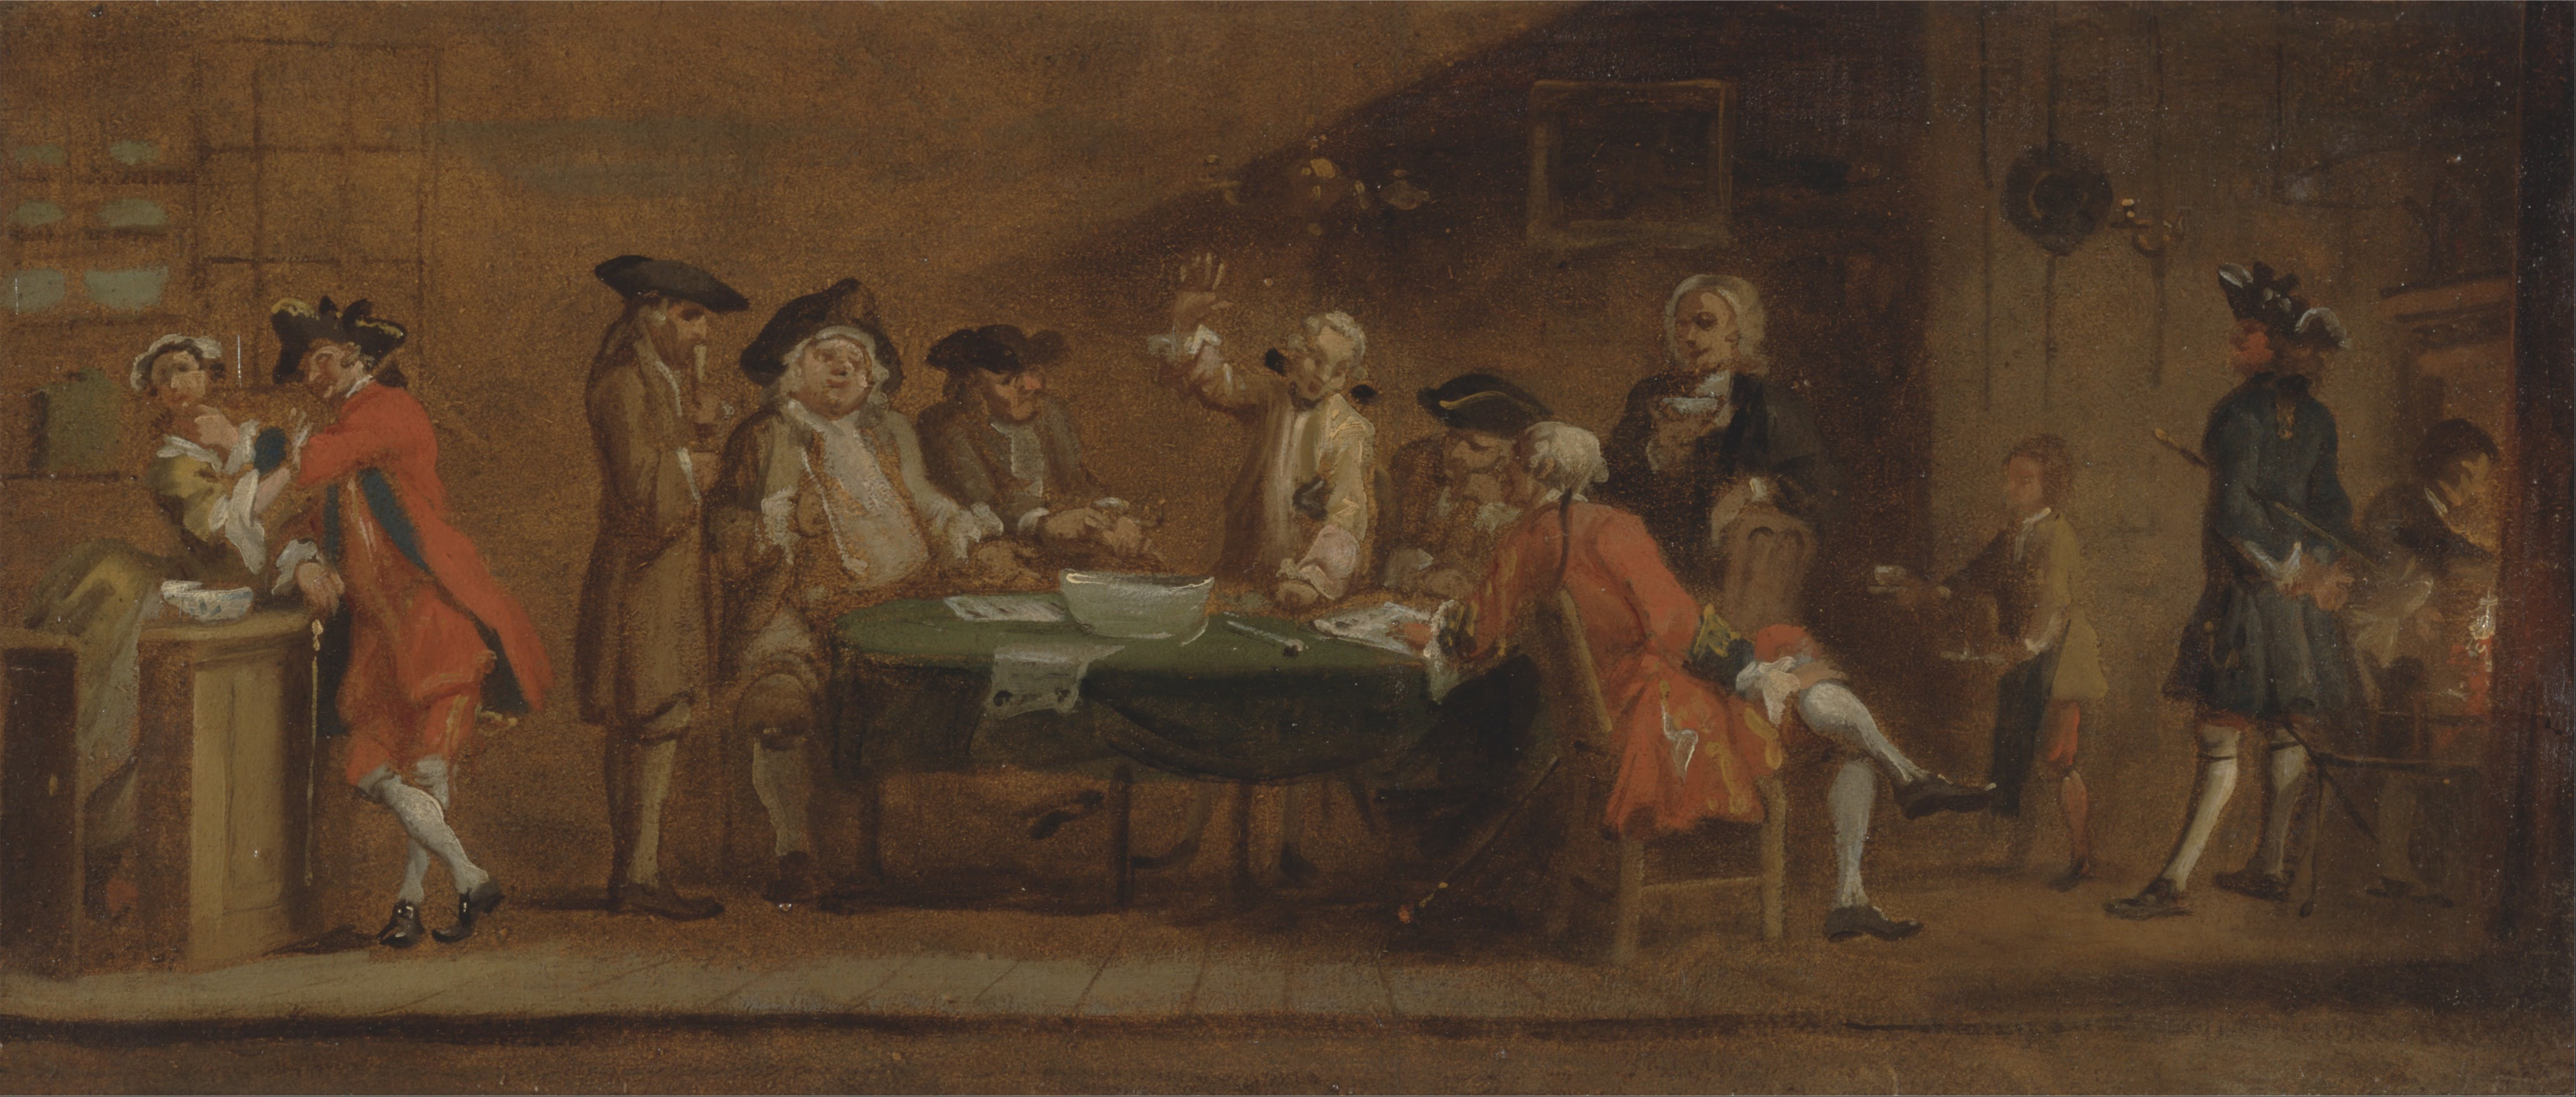 Joseph_Highmore_-_Figures_in_a_Tavern_or